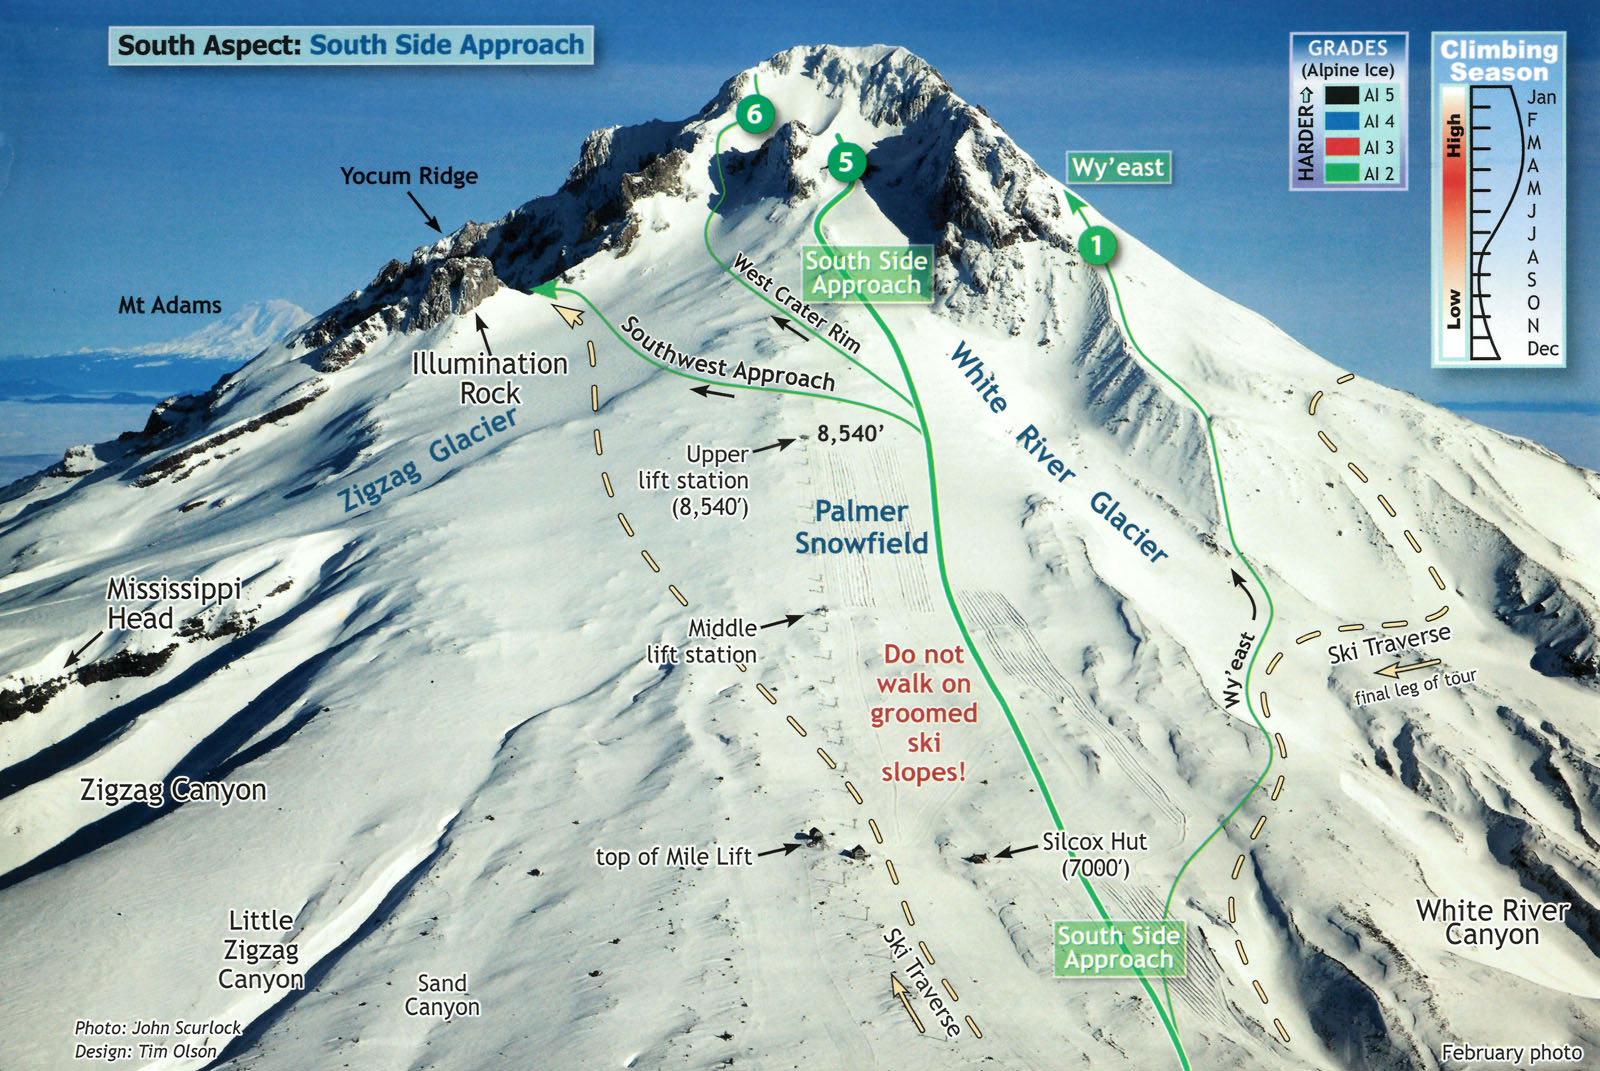 Image credit: Mt Hood Climber's Guide by Bill Mullee